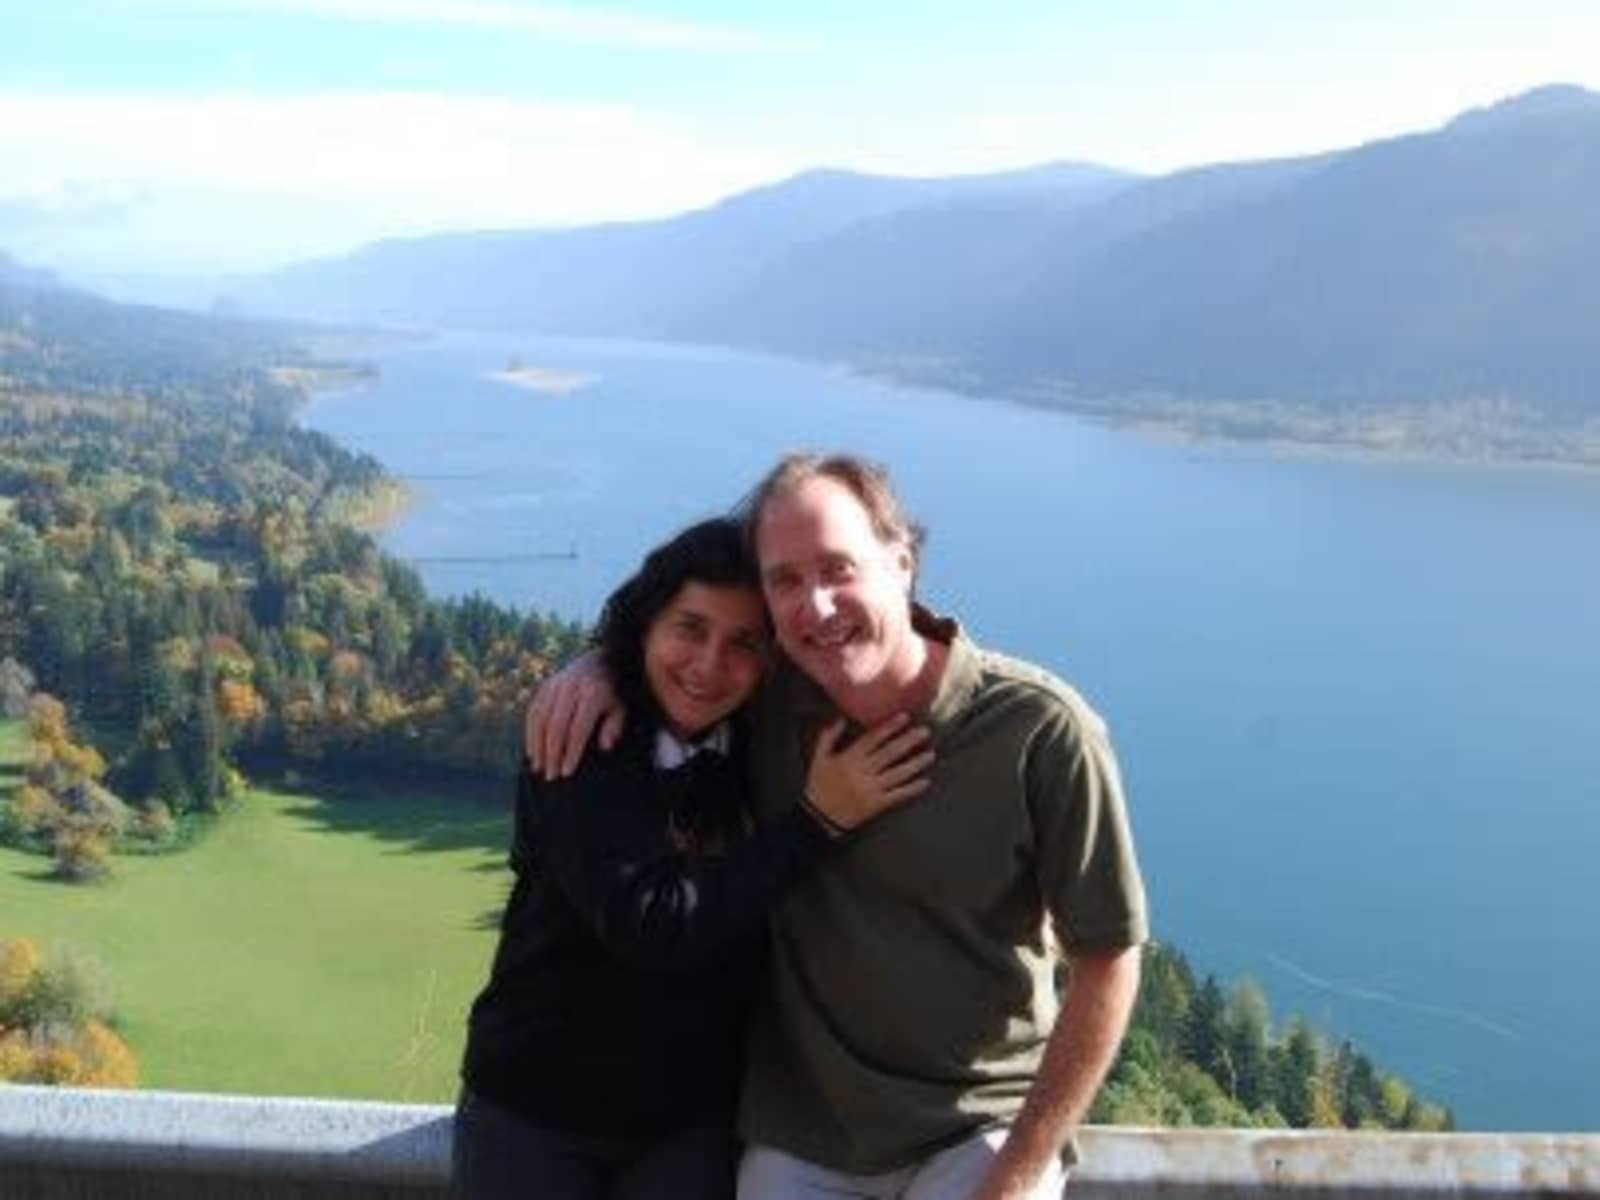 Ron & Ouided from Bothell, Washington, United States